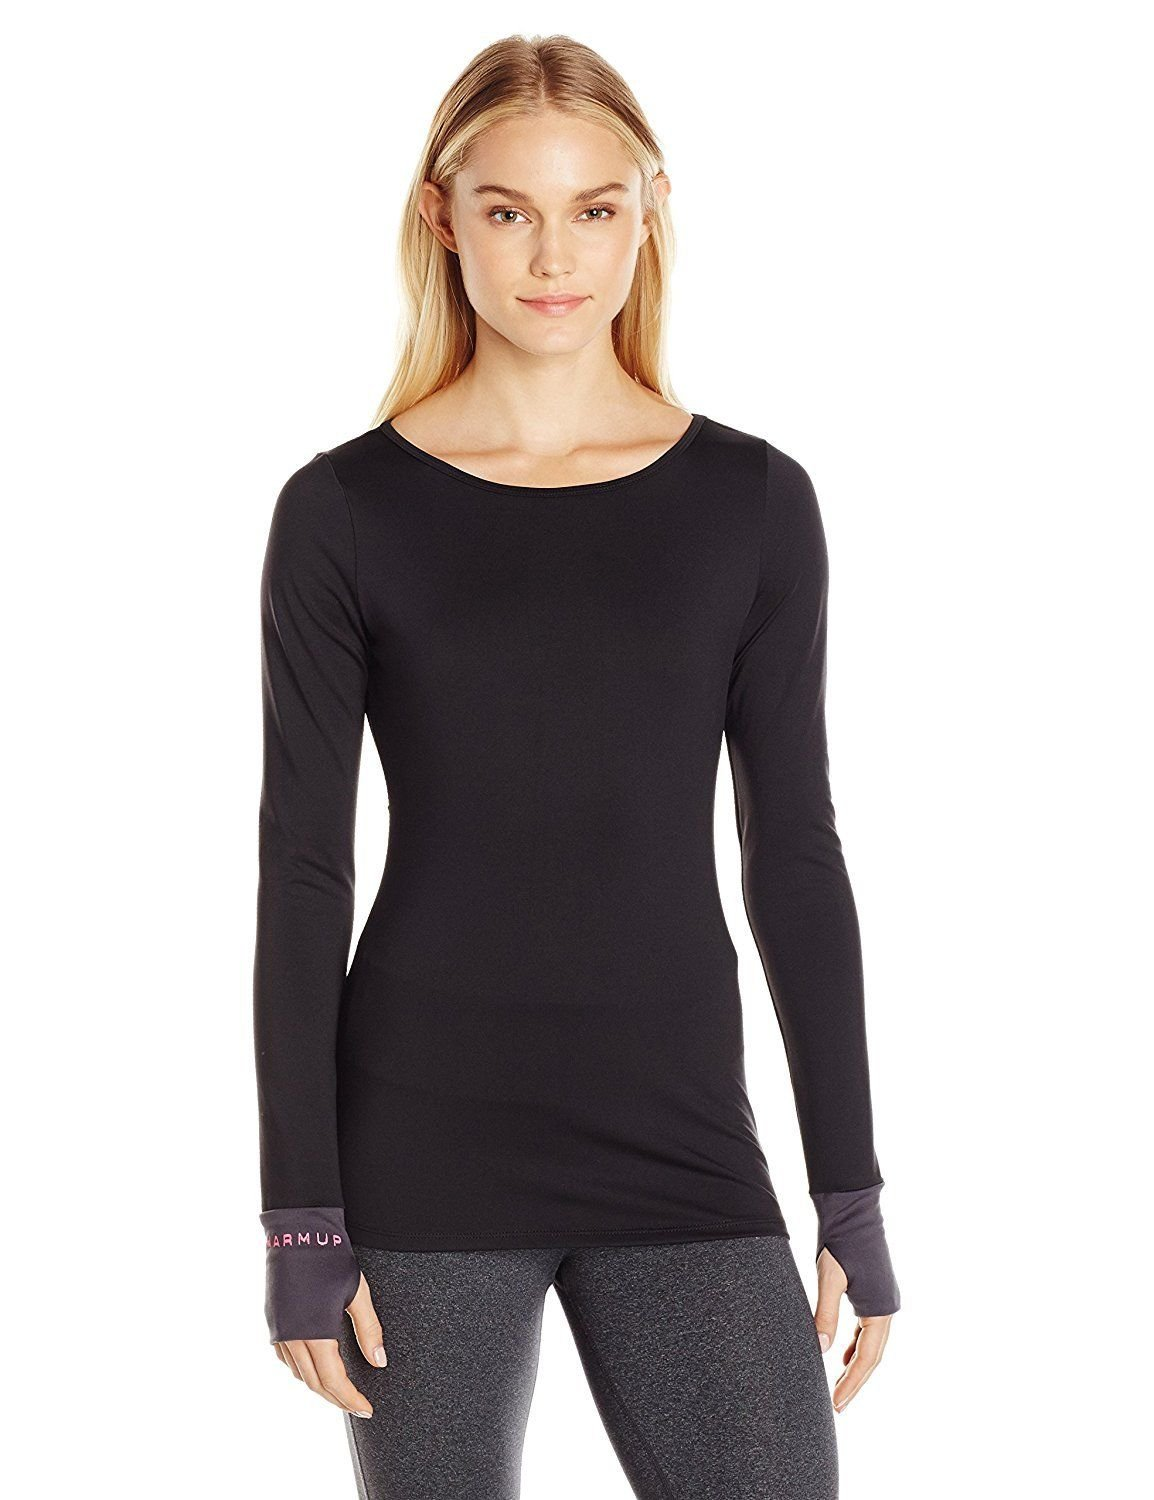 42f22420ae244 The Warm Up by Jessica Simpson Women's Jet Black Compression LS Size Large  NWT